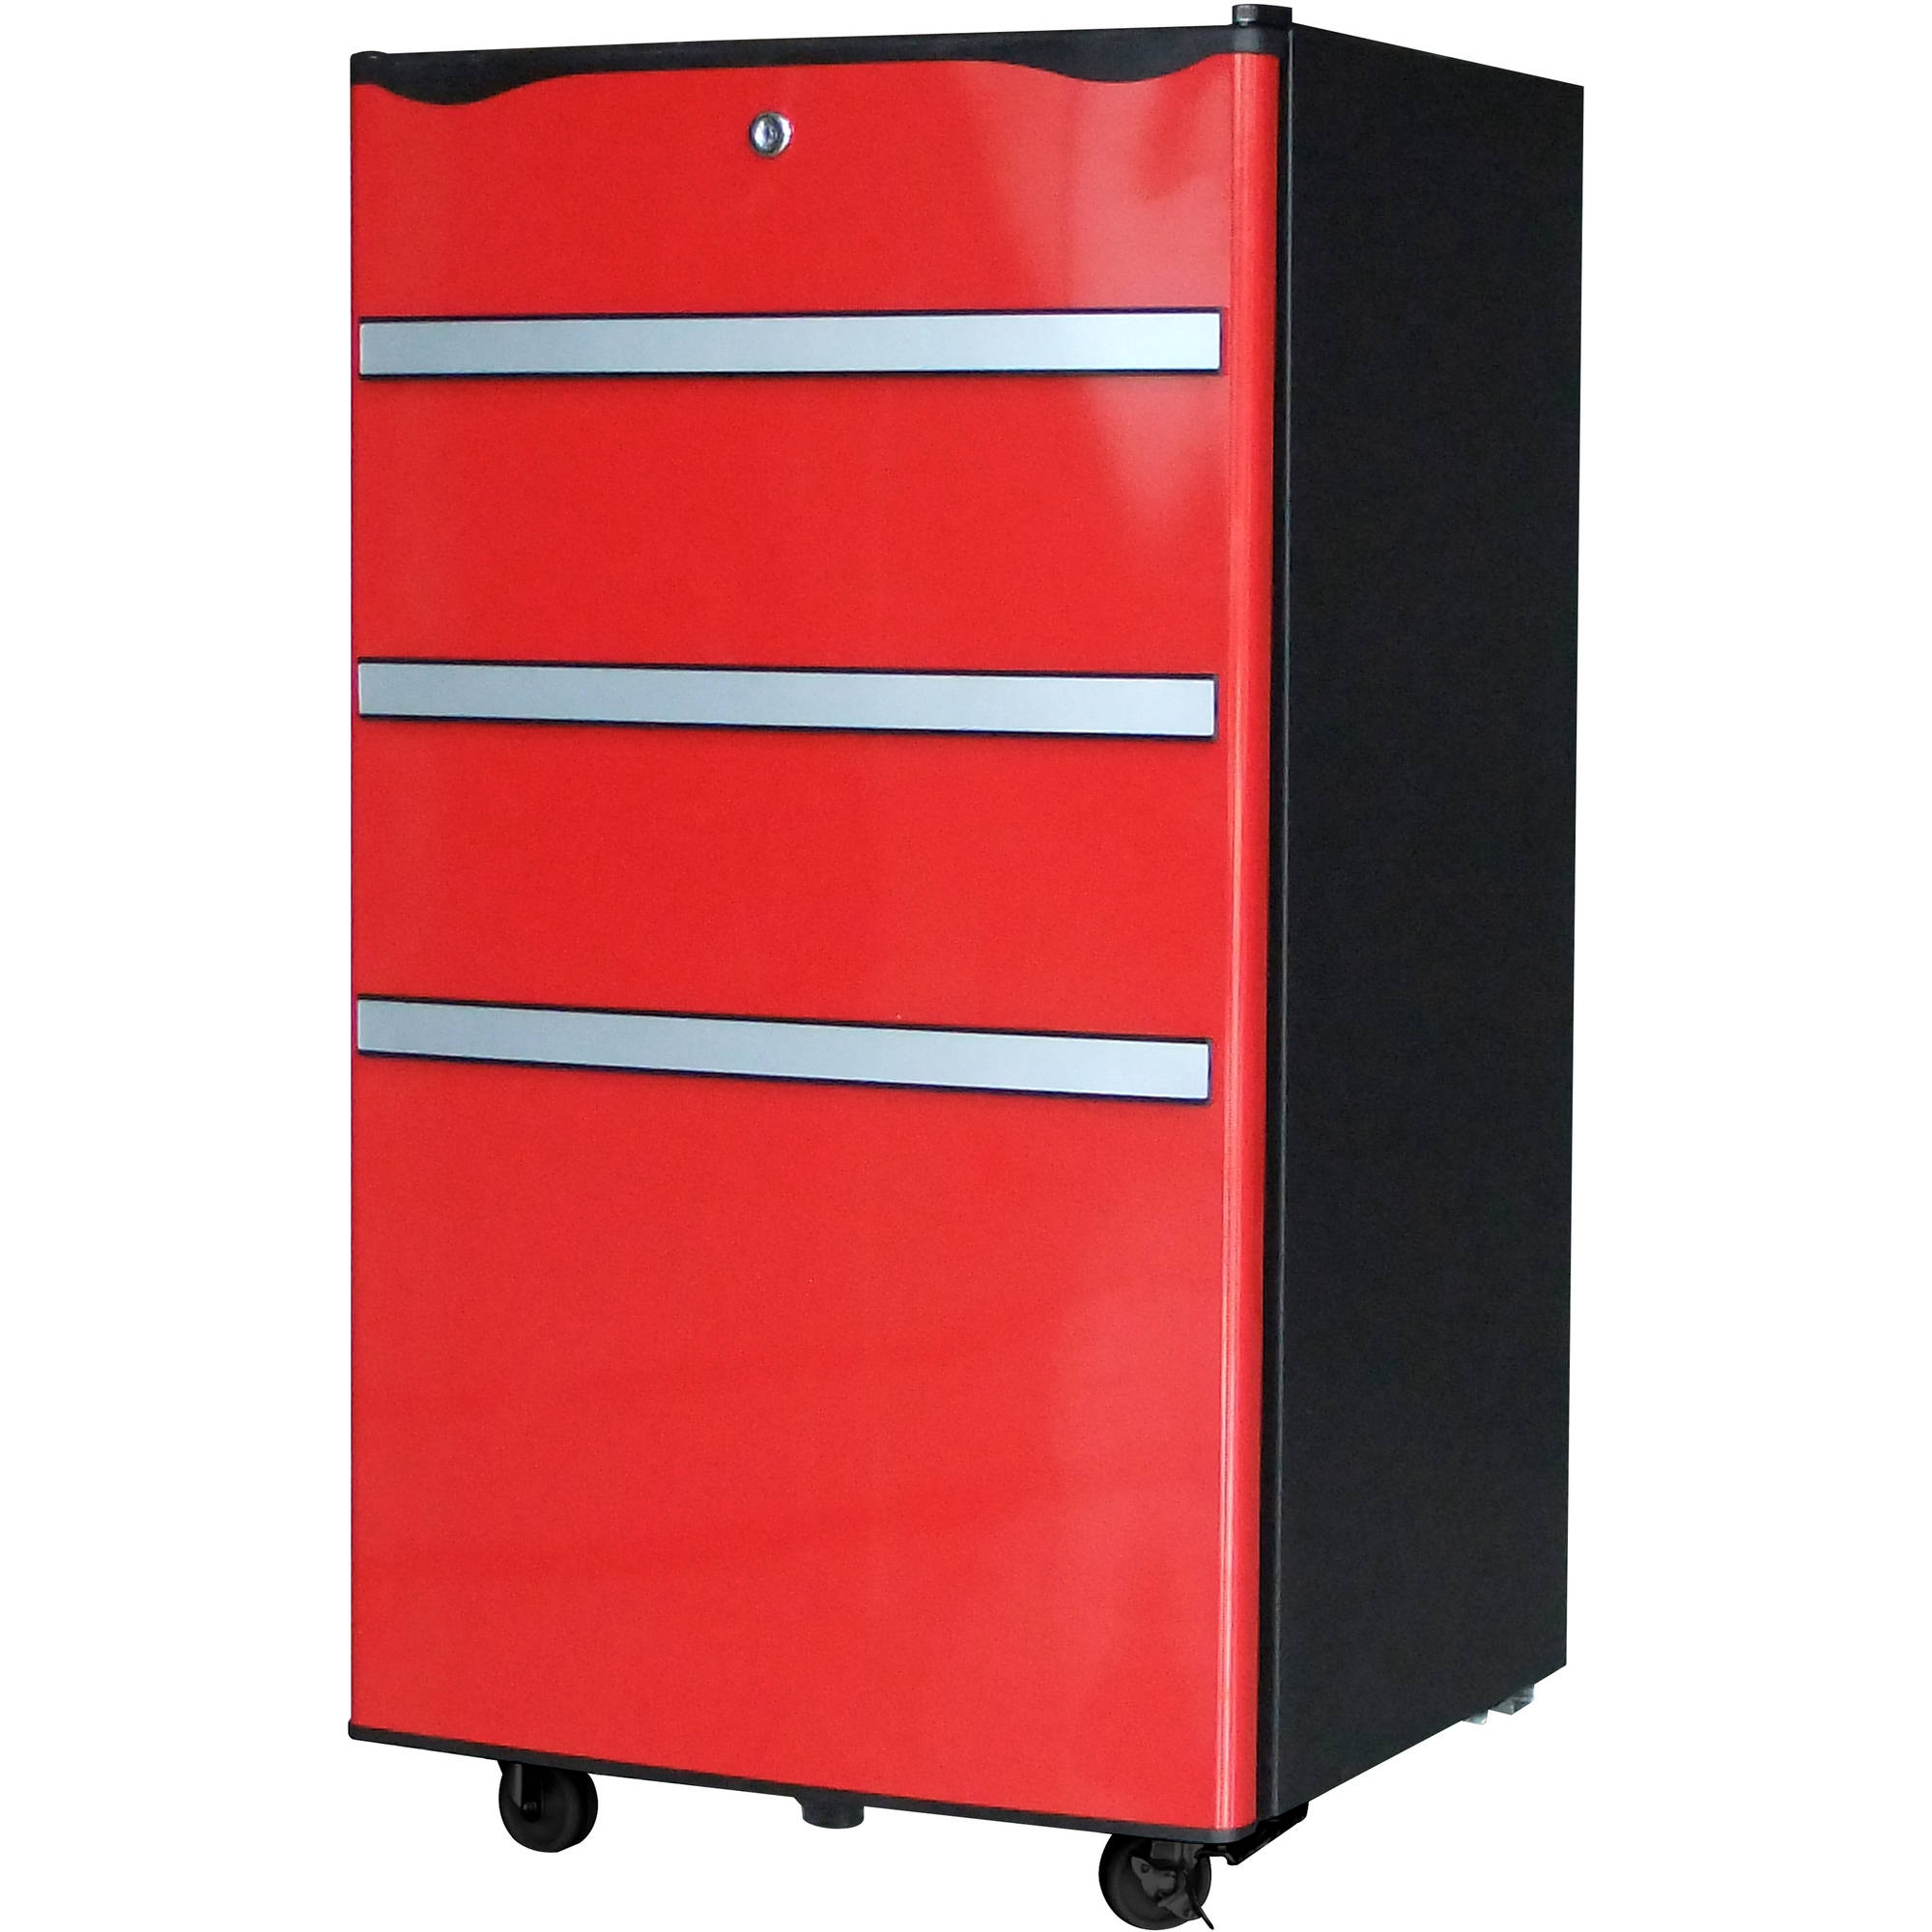 Igloo 3 2 Cu Ft Garage Utility Refrigerator Red Walmart Com